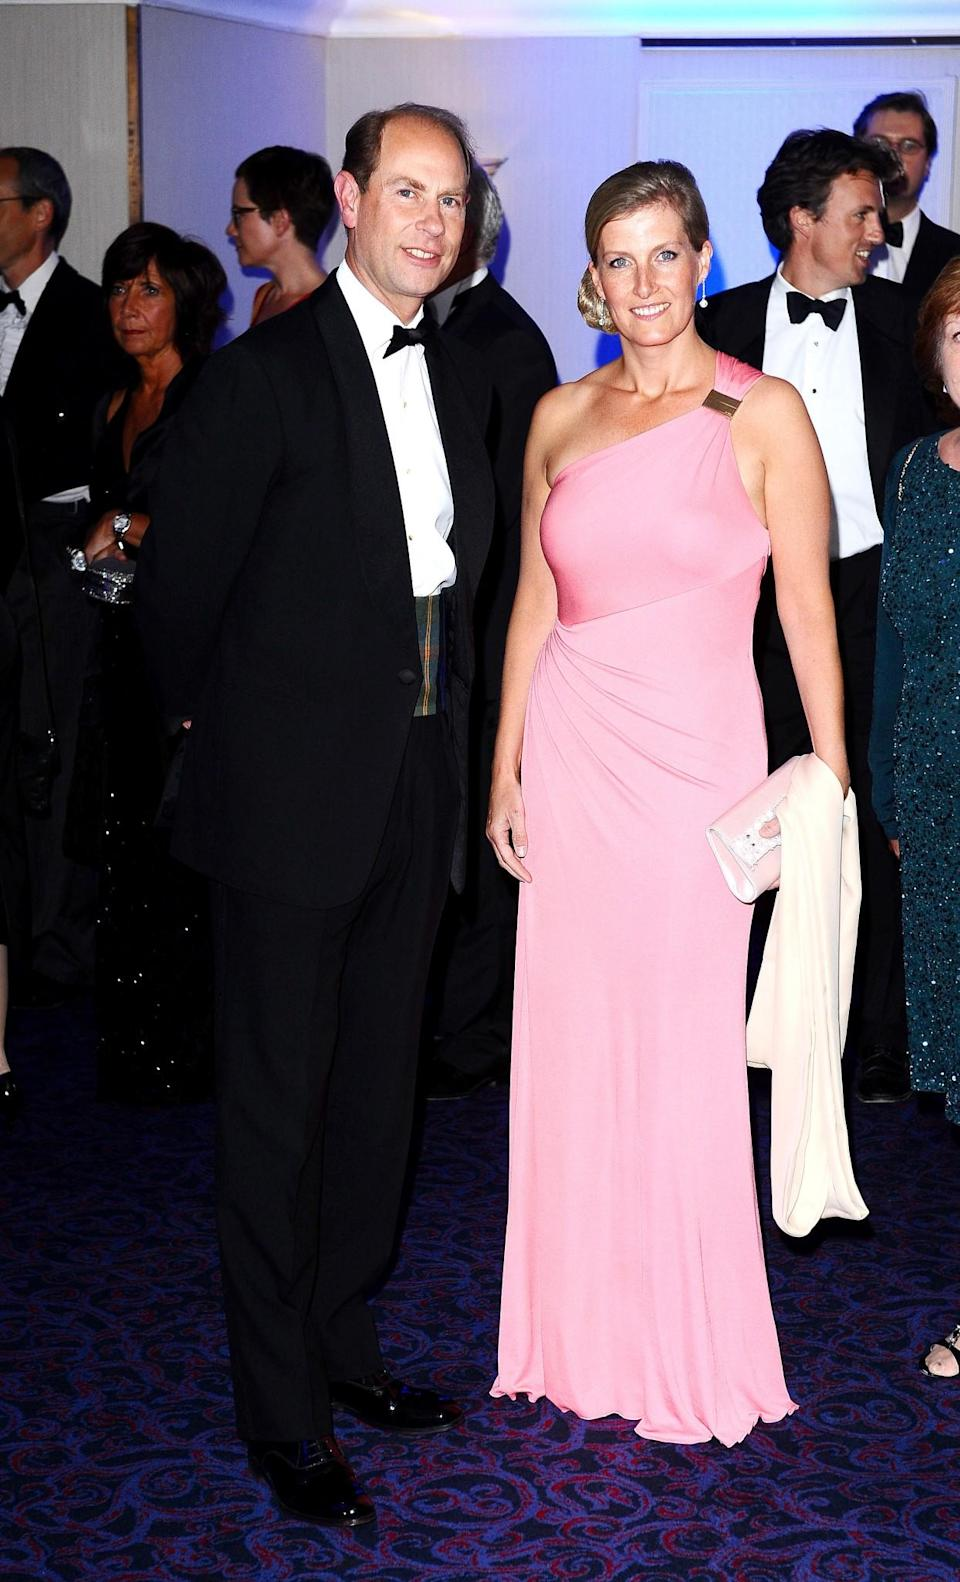 <p>Super-feminine in a dusty pink gown at the Grosvenor House Hotel in September 2012[Photo: PA] </p>